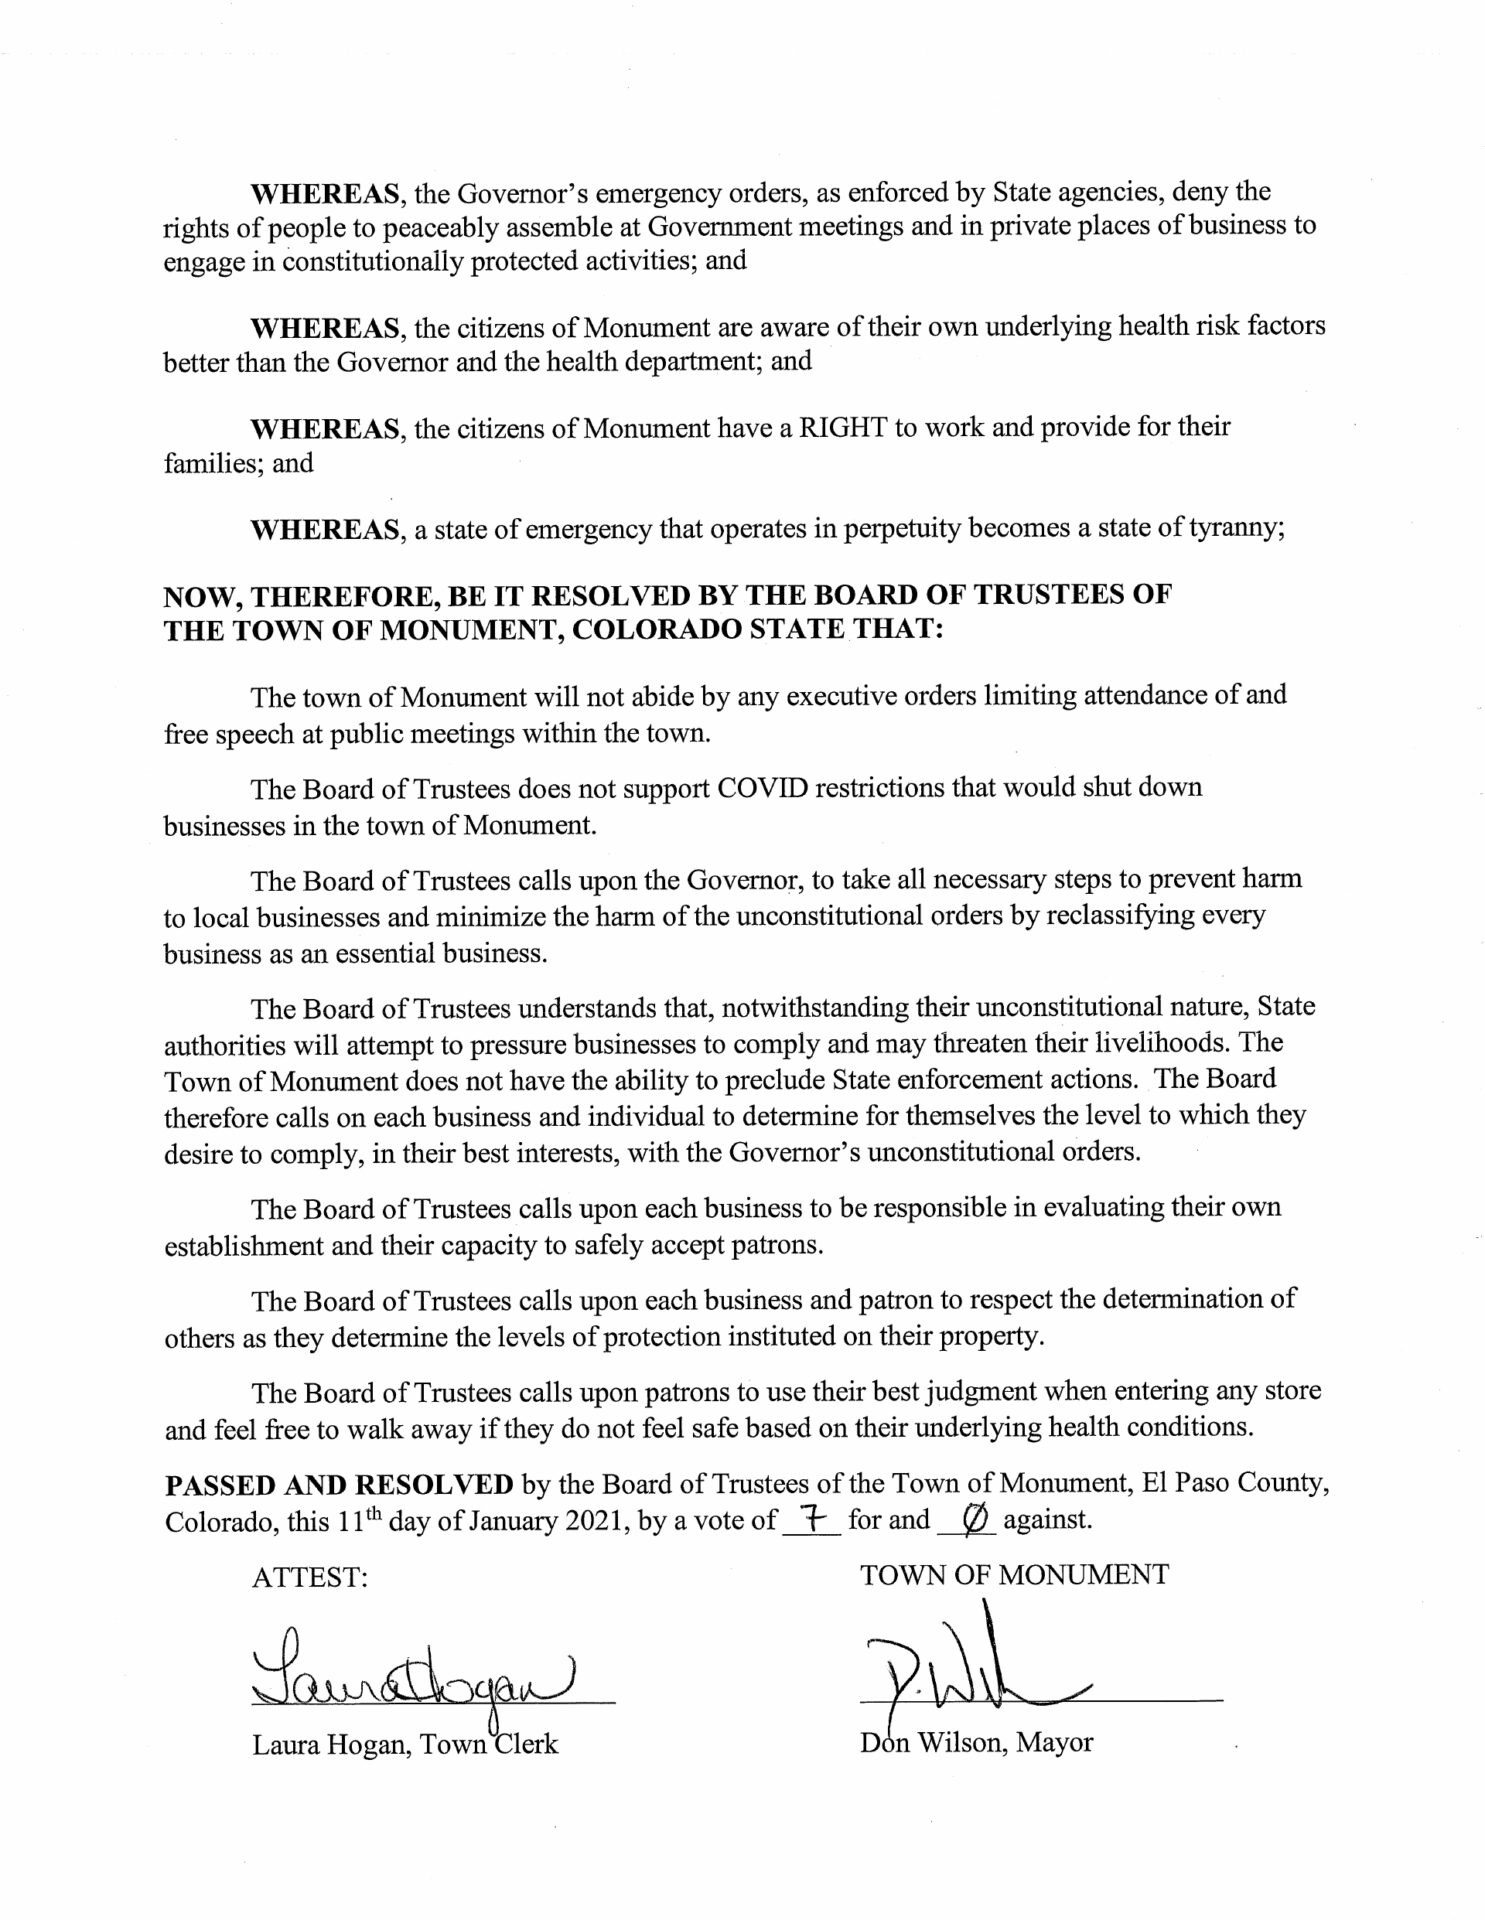 Resolution No. 08-2021 - condemning unconstitutional limitations pg 2